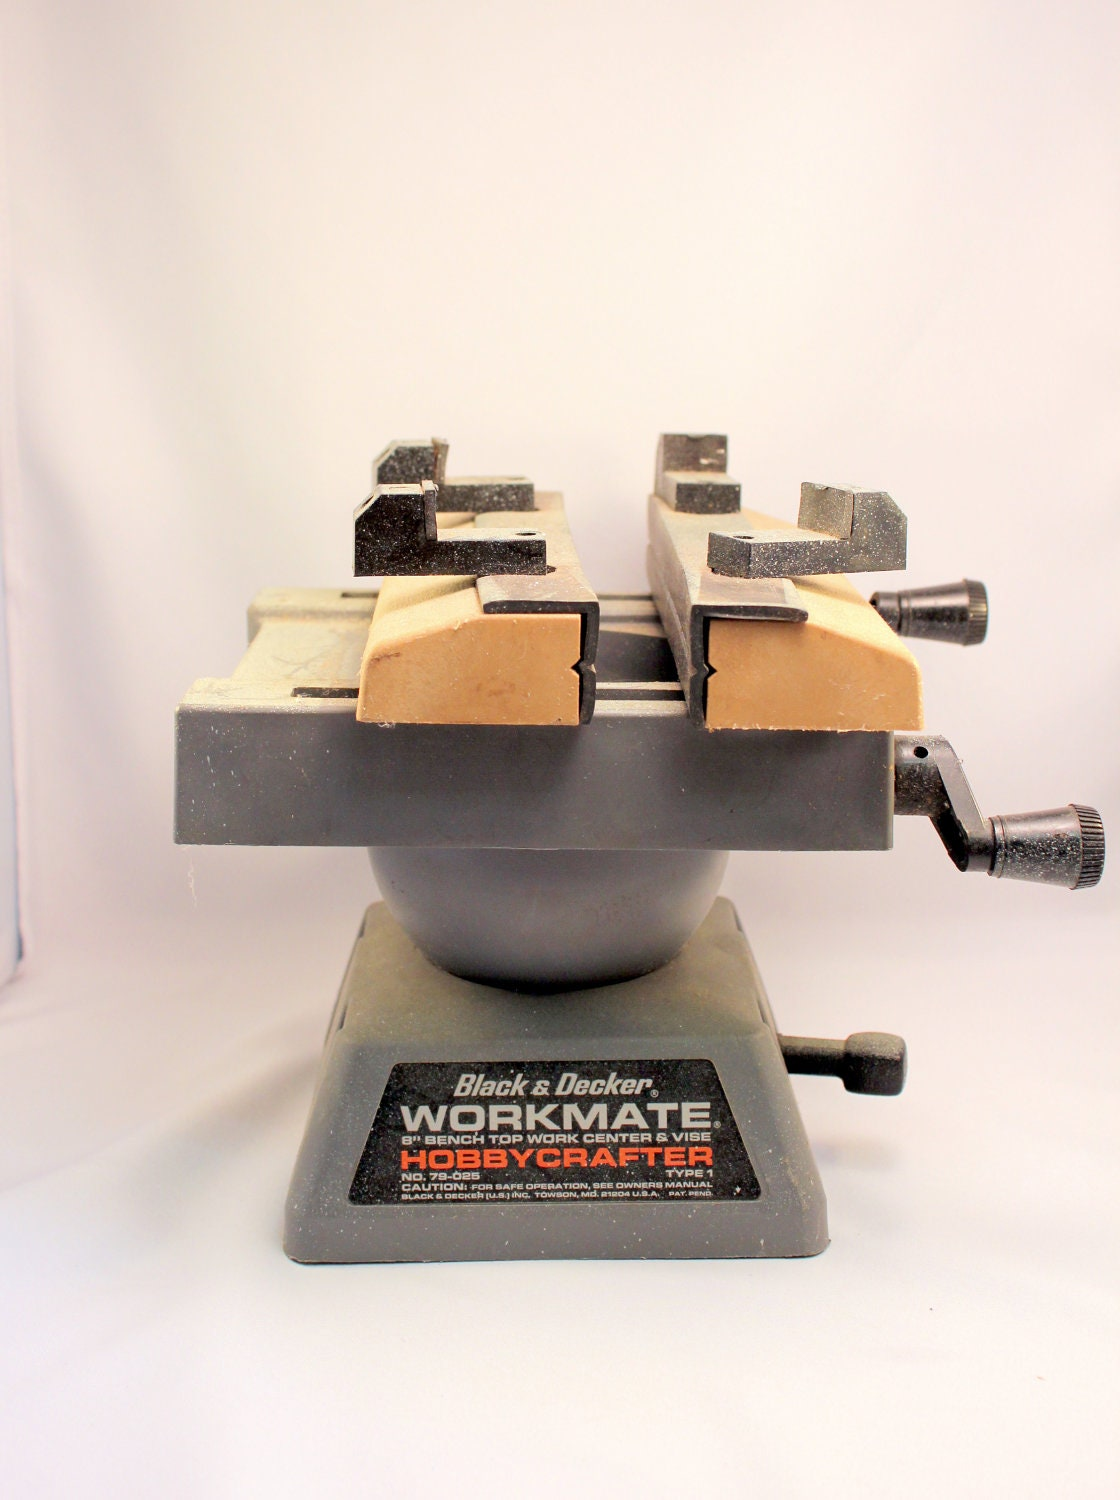 Black Decker Hobbycrafter Workmate Bench Top Vice